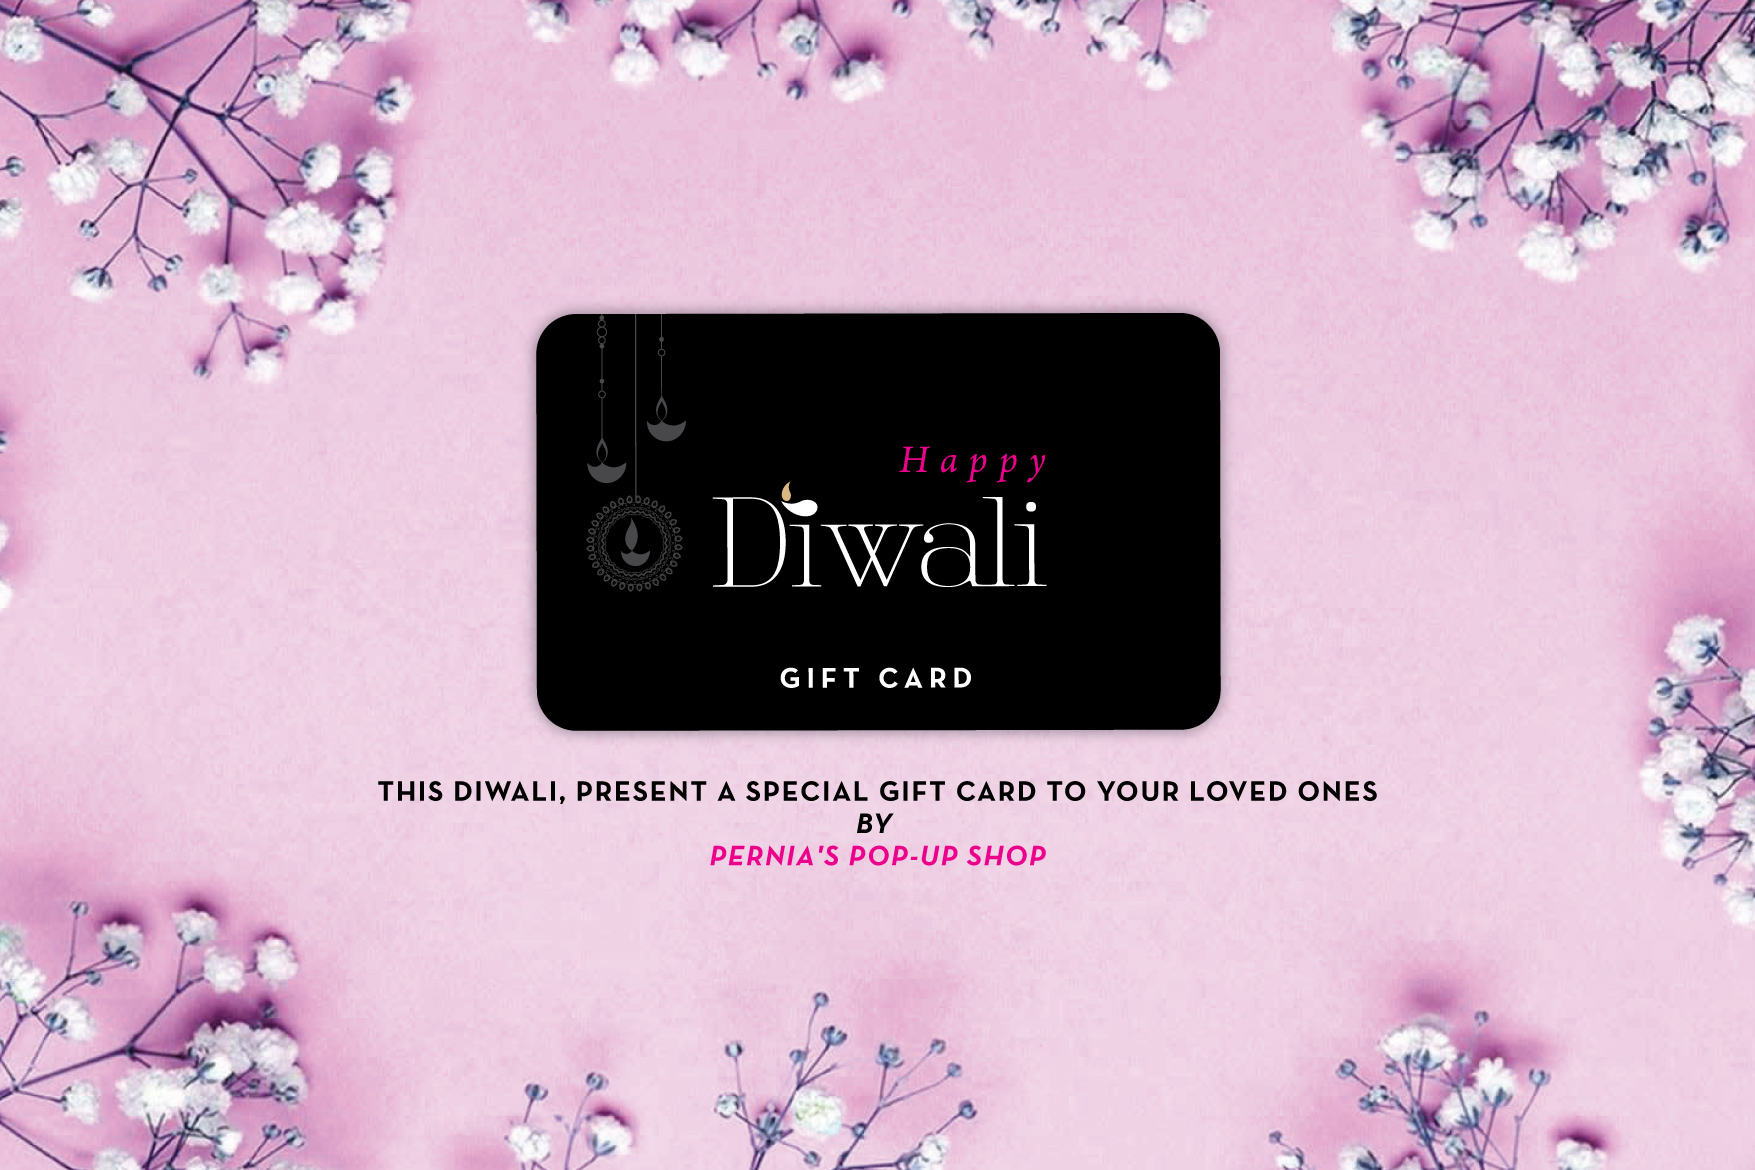 Diwali-Gift-Card-Blog